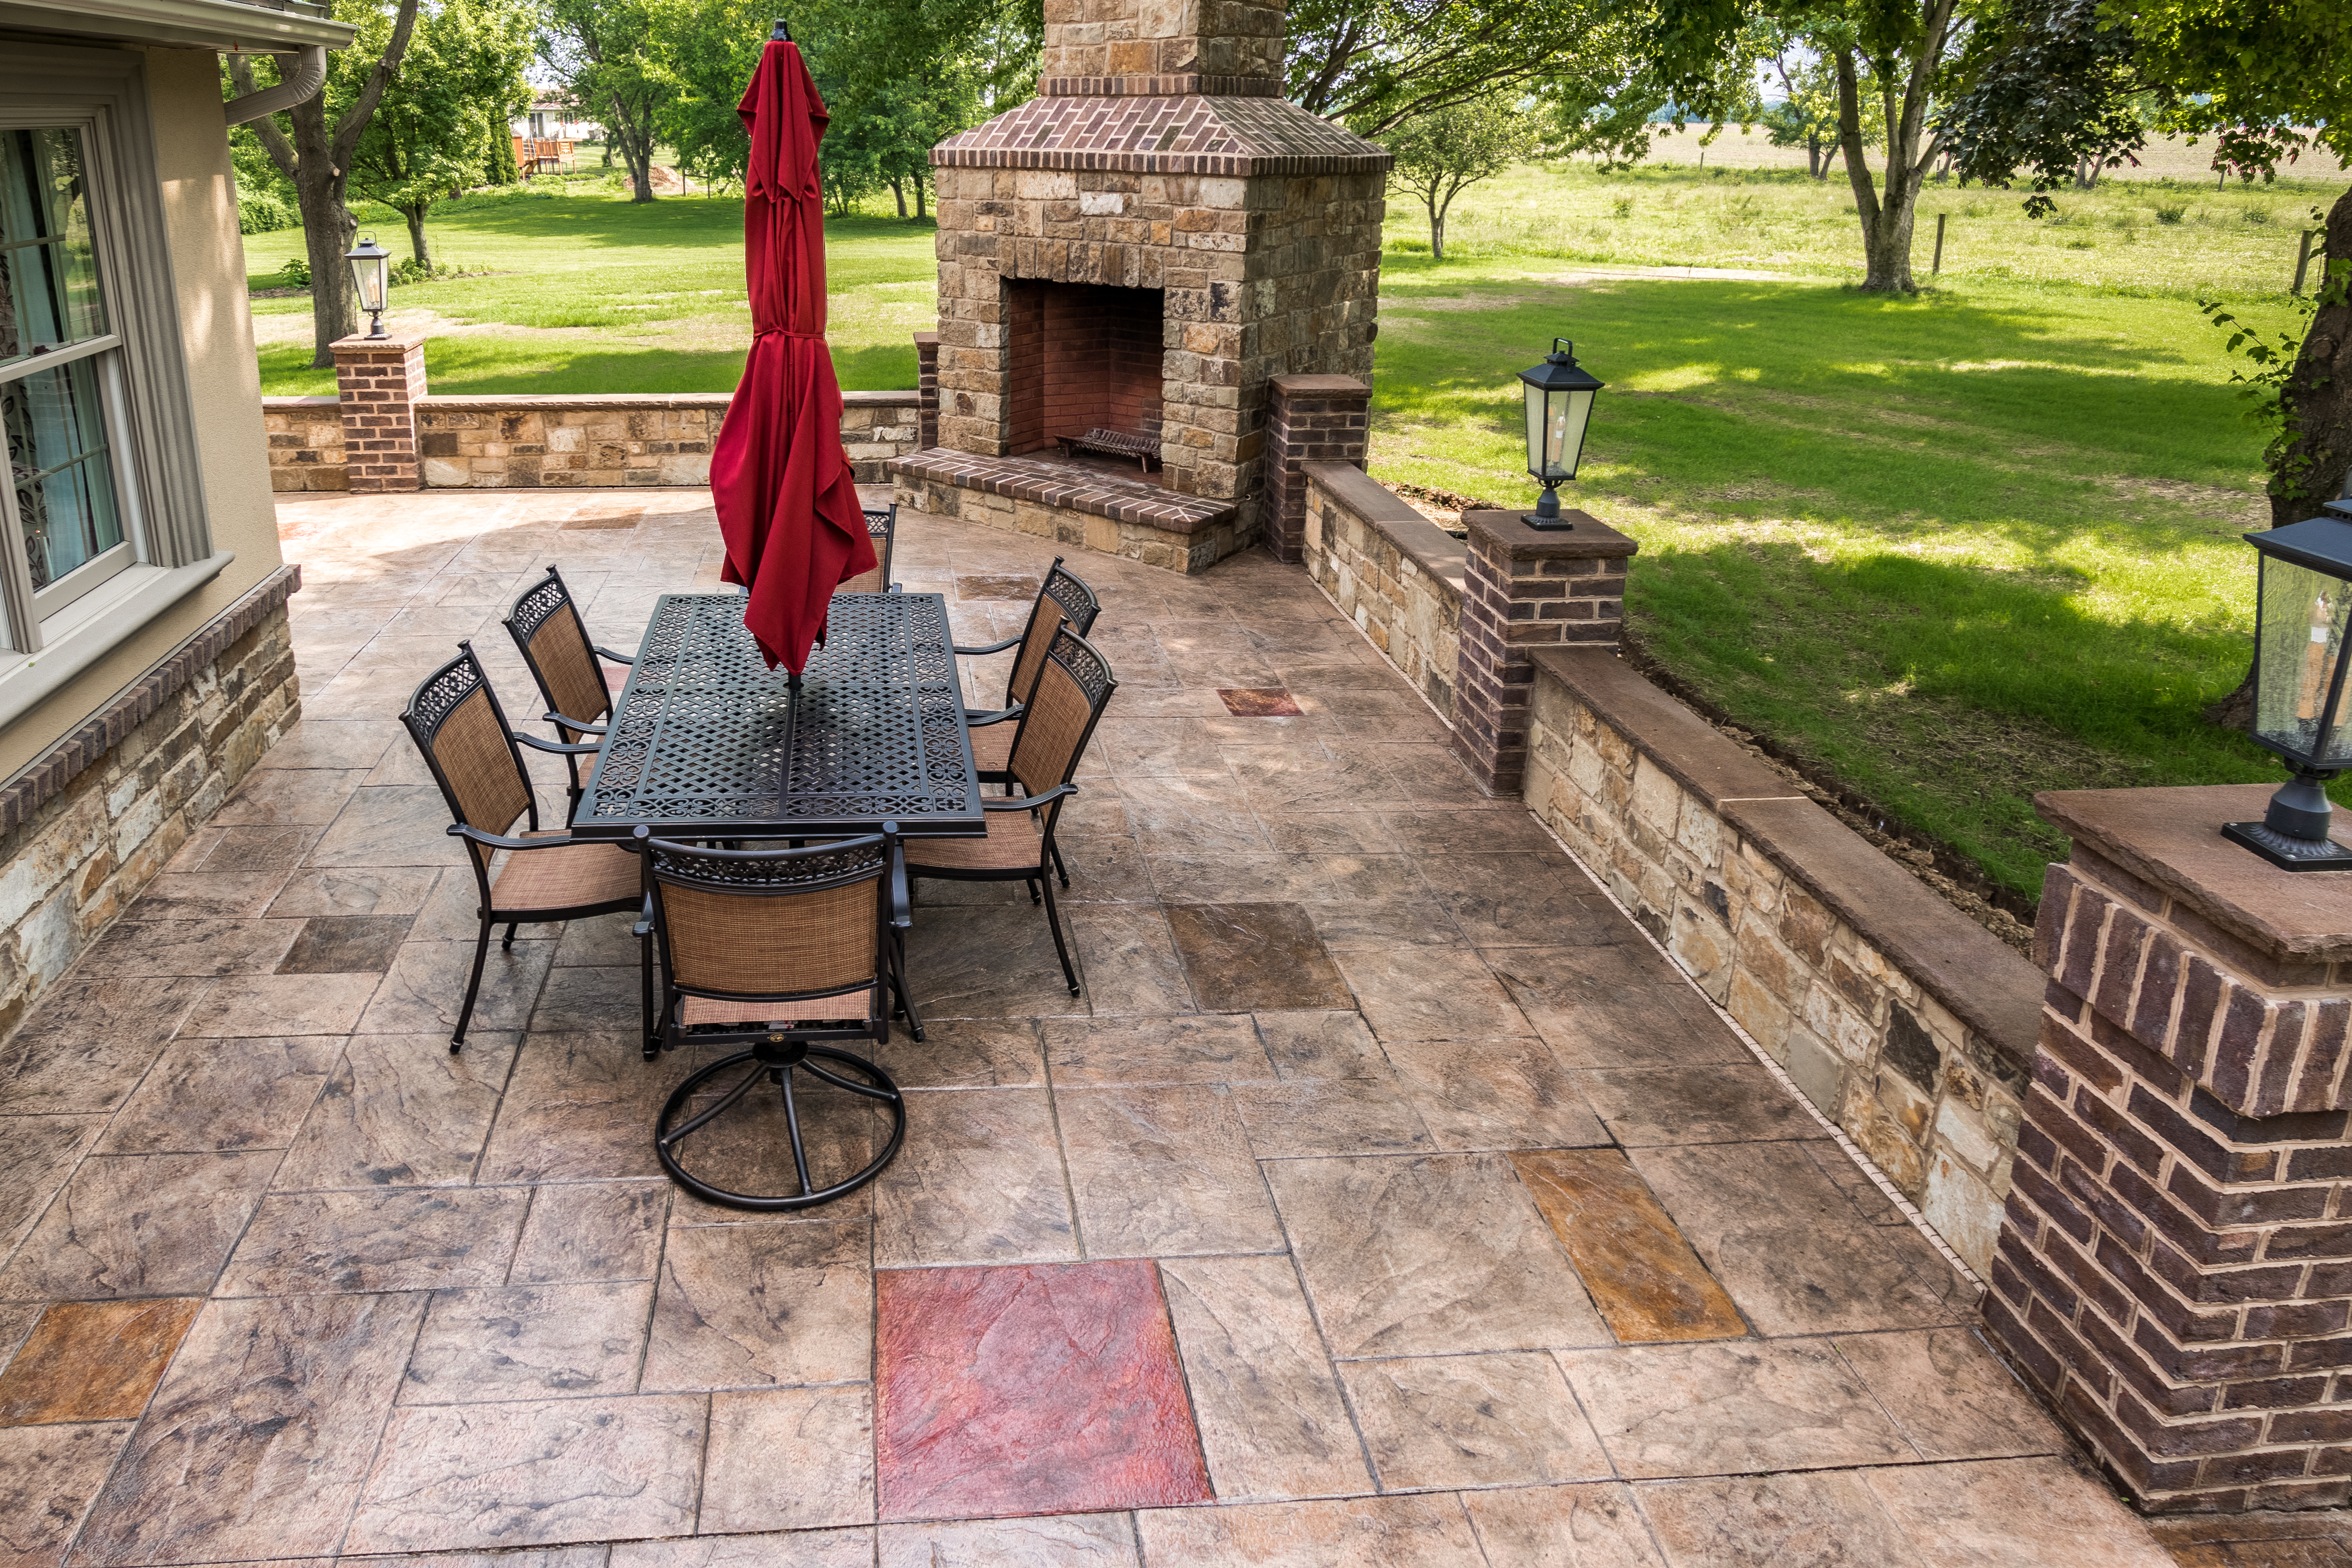 stamped concrete patio 2016-06-04 15.46.41-1 ZBSDNNQ